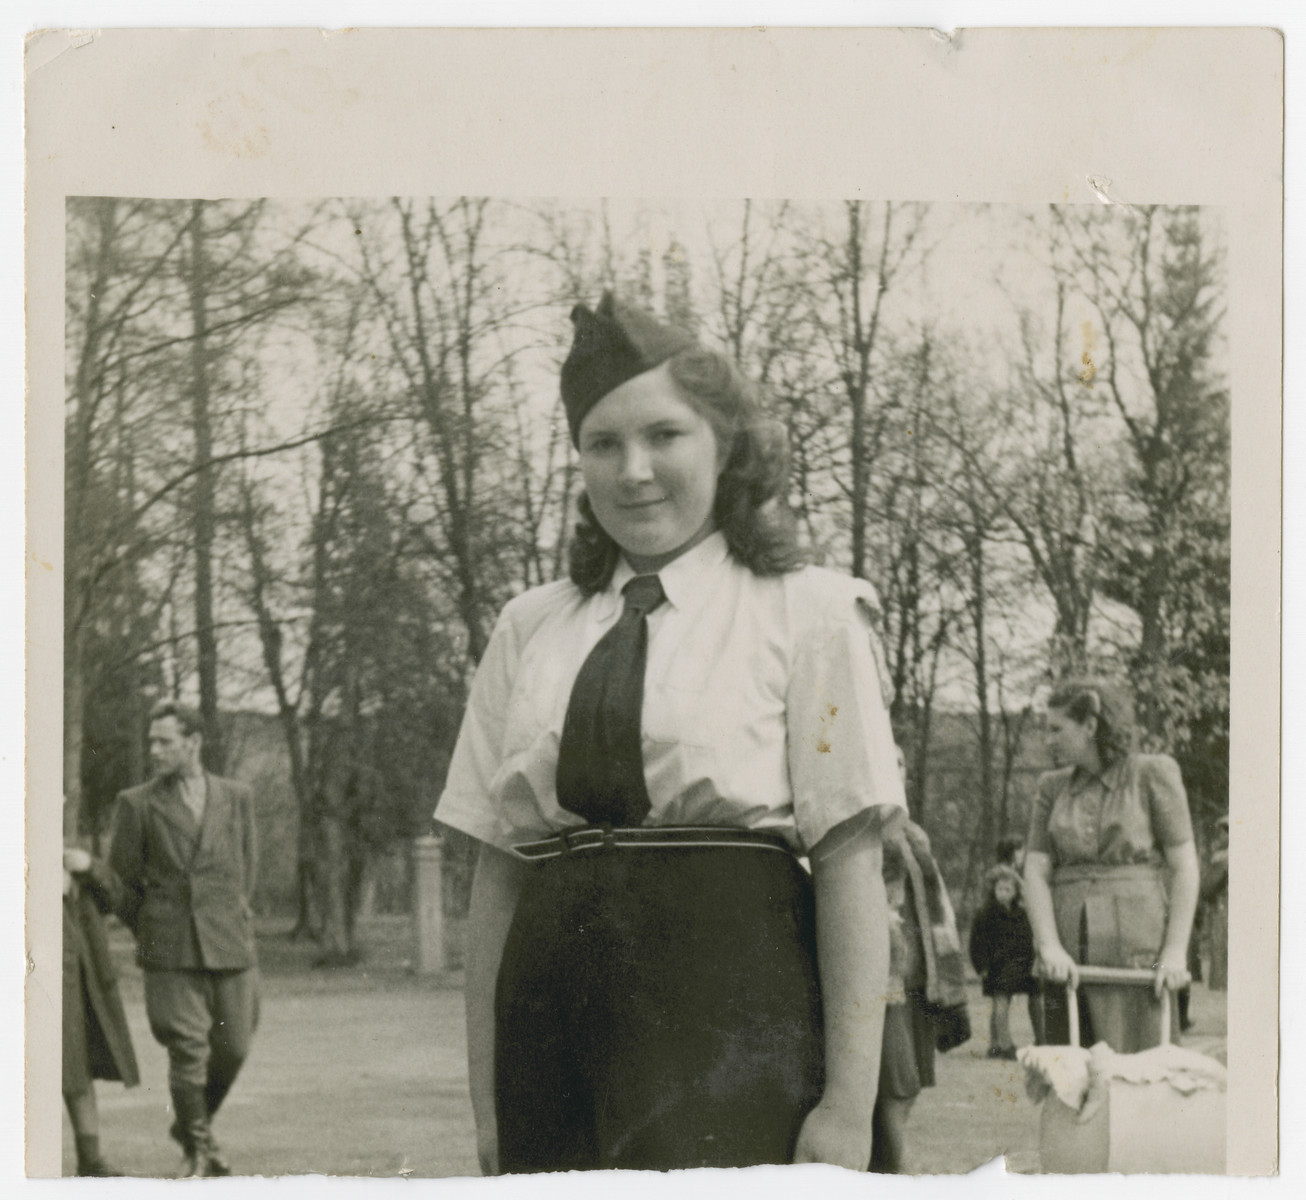 Lenke Gruenberg poses in her Betar uniform outside the Deggendorf displaced persons camp.